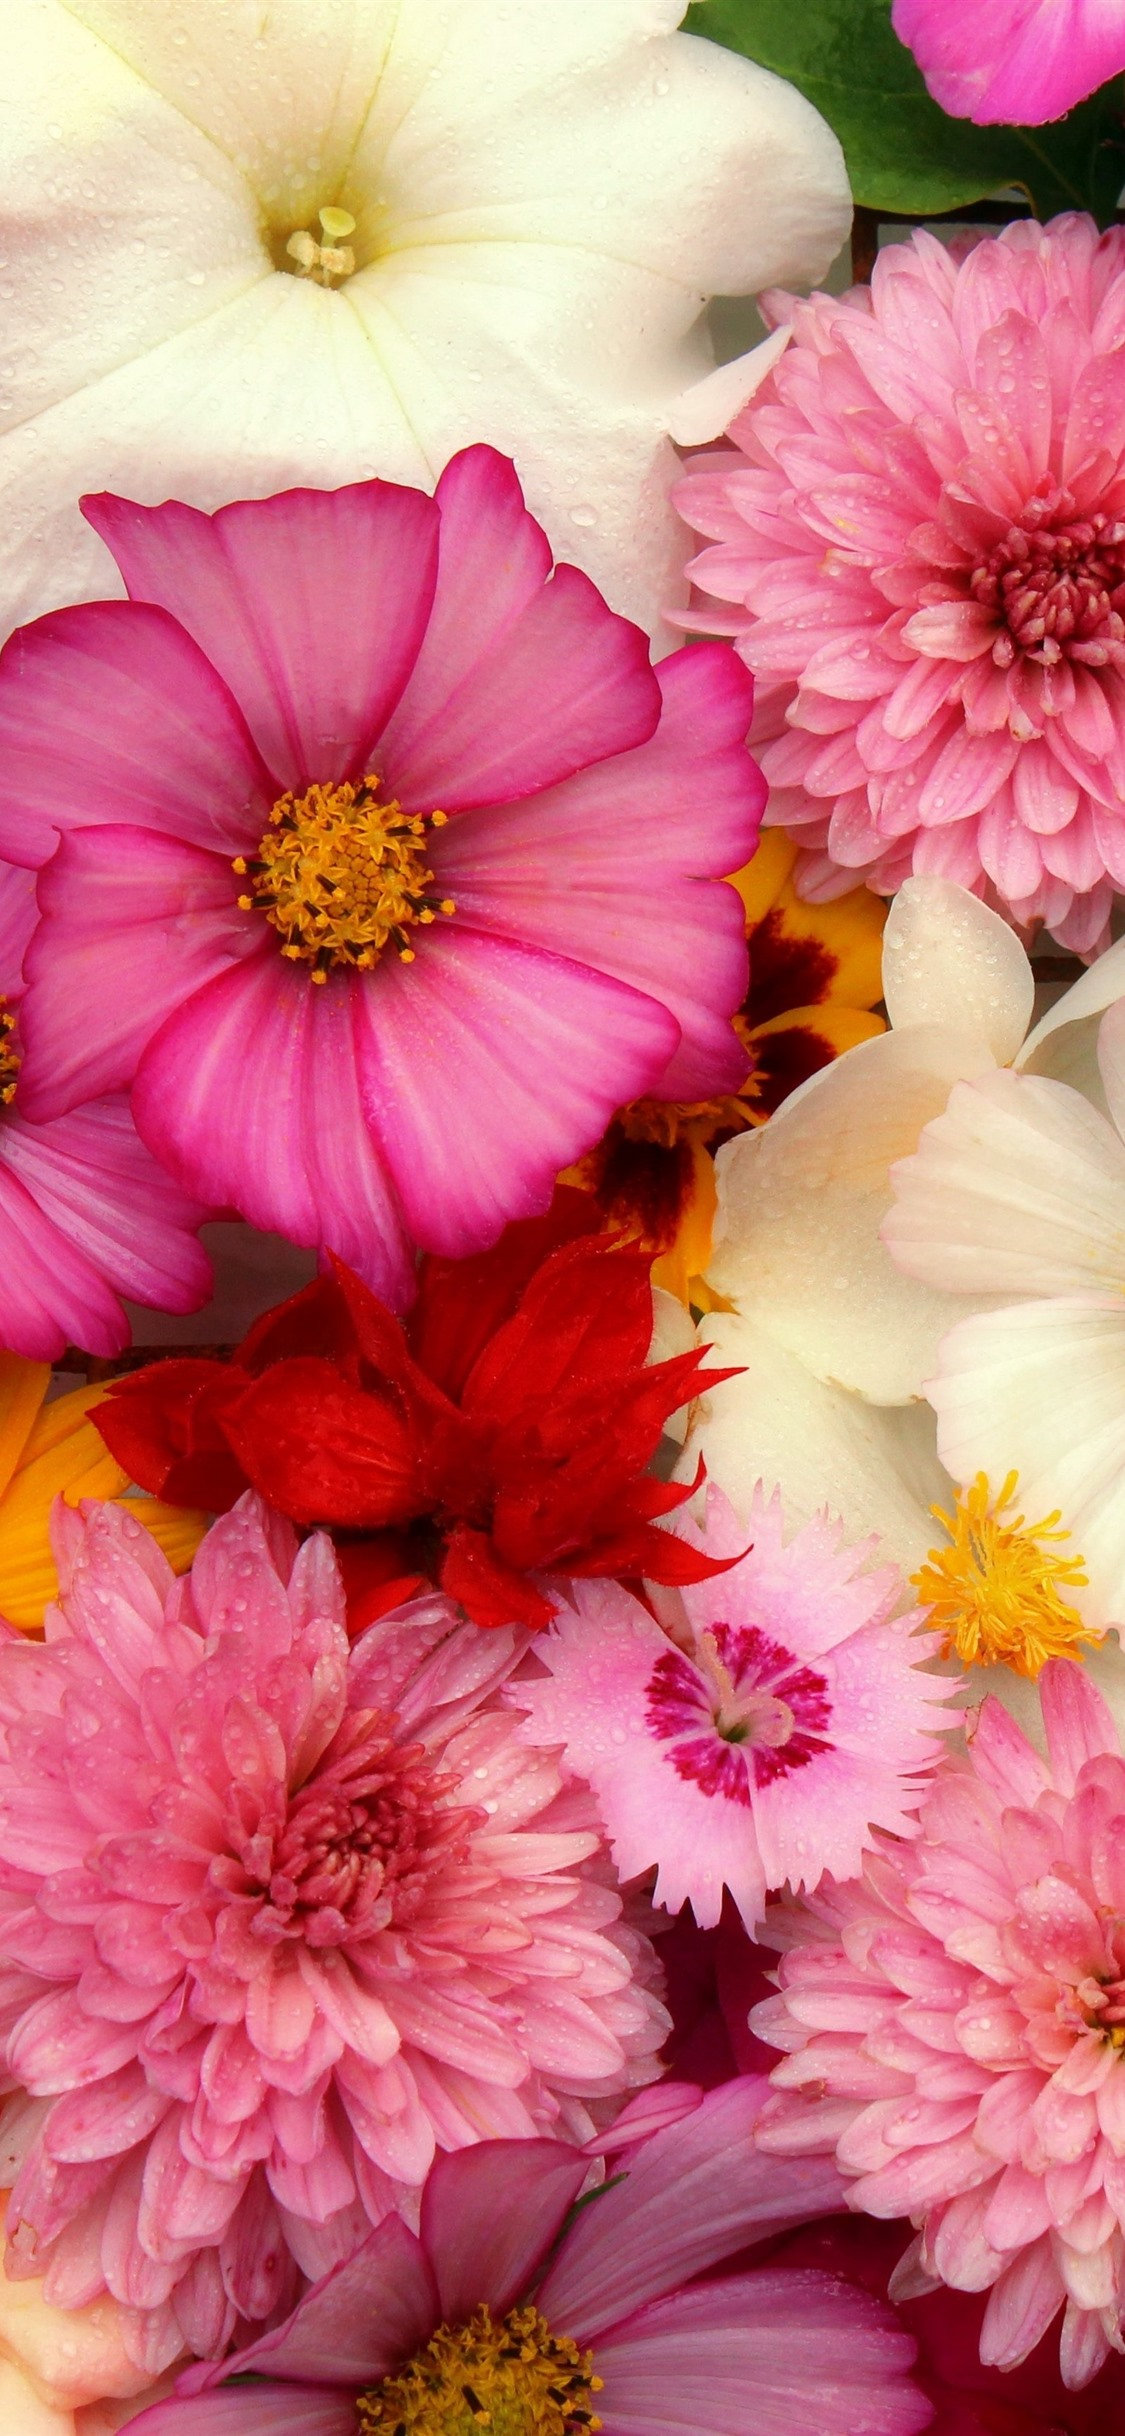 Wallpaper Flowers Background Many Kinds Pink 5120x2880